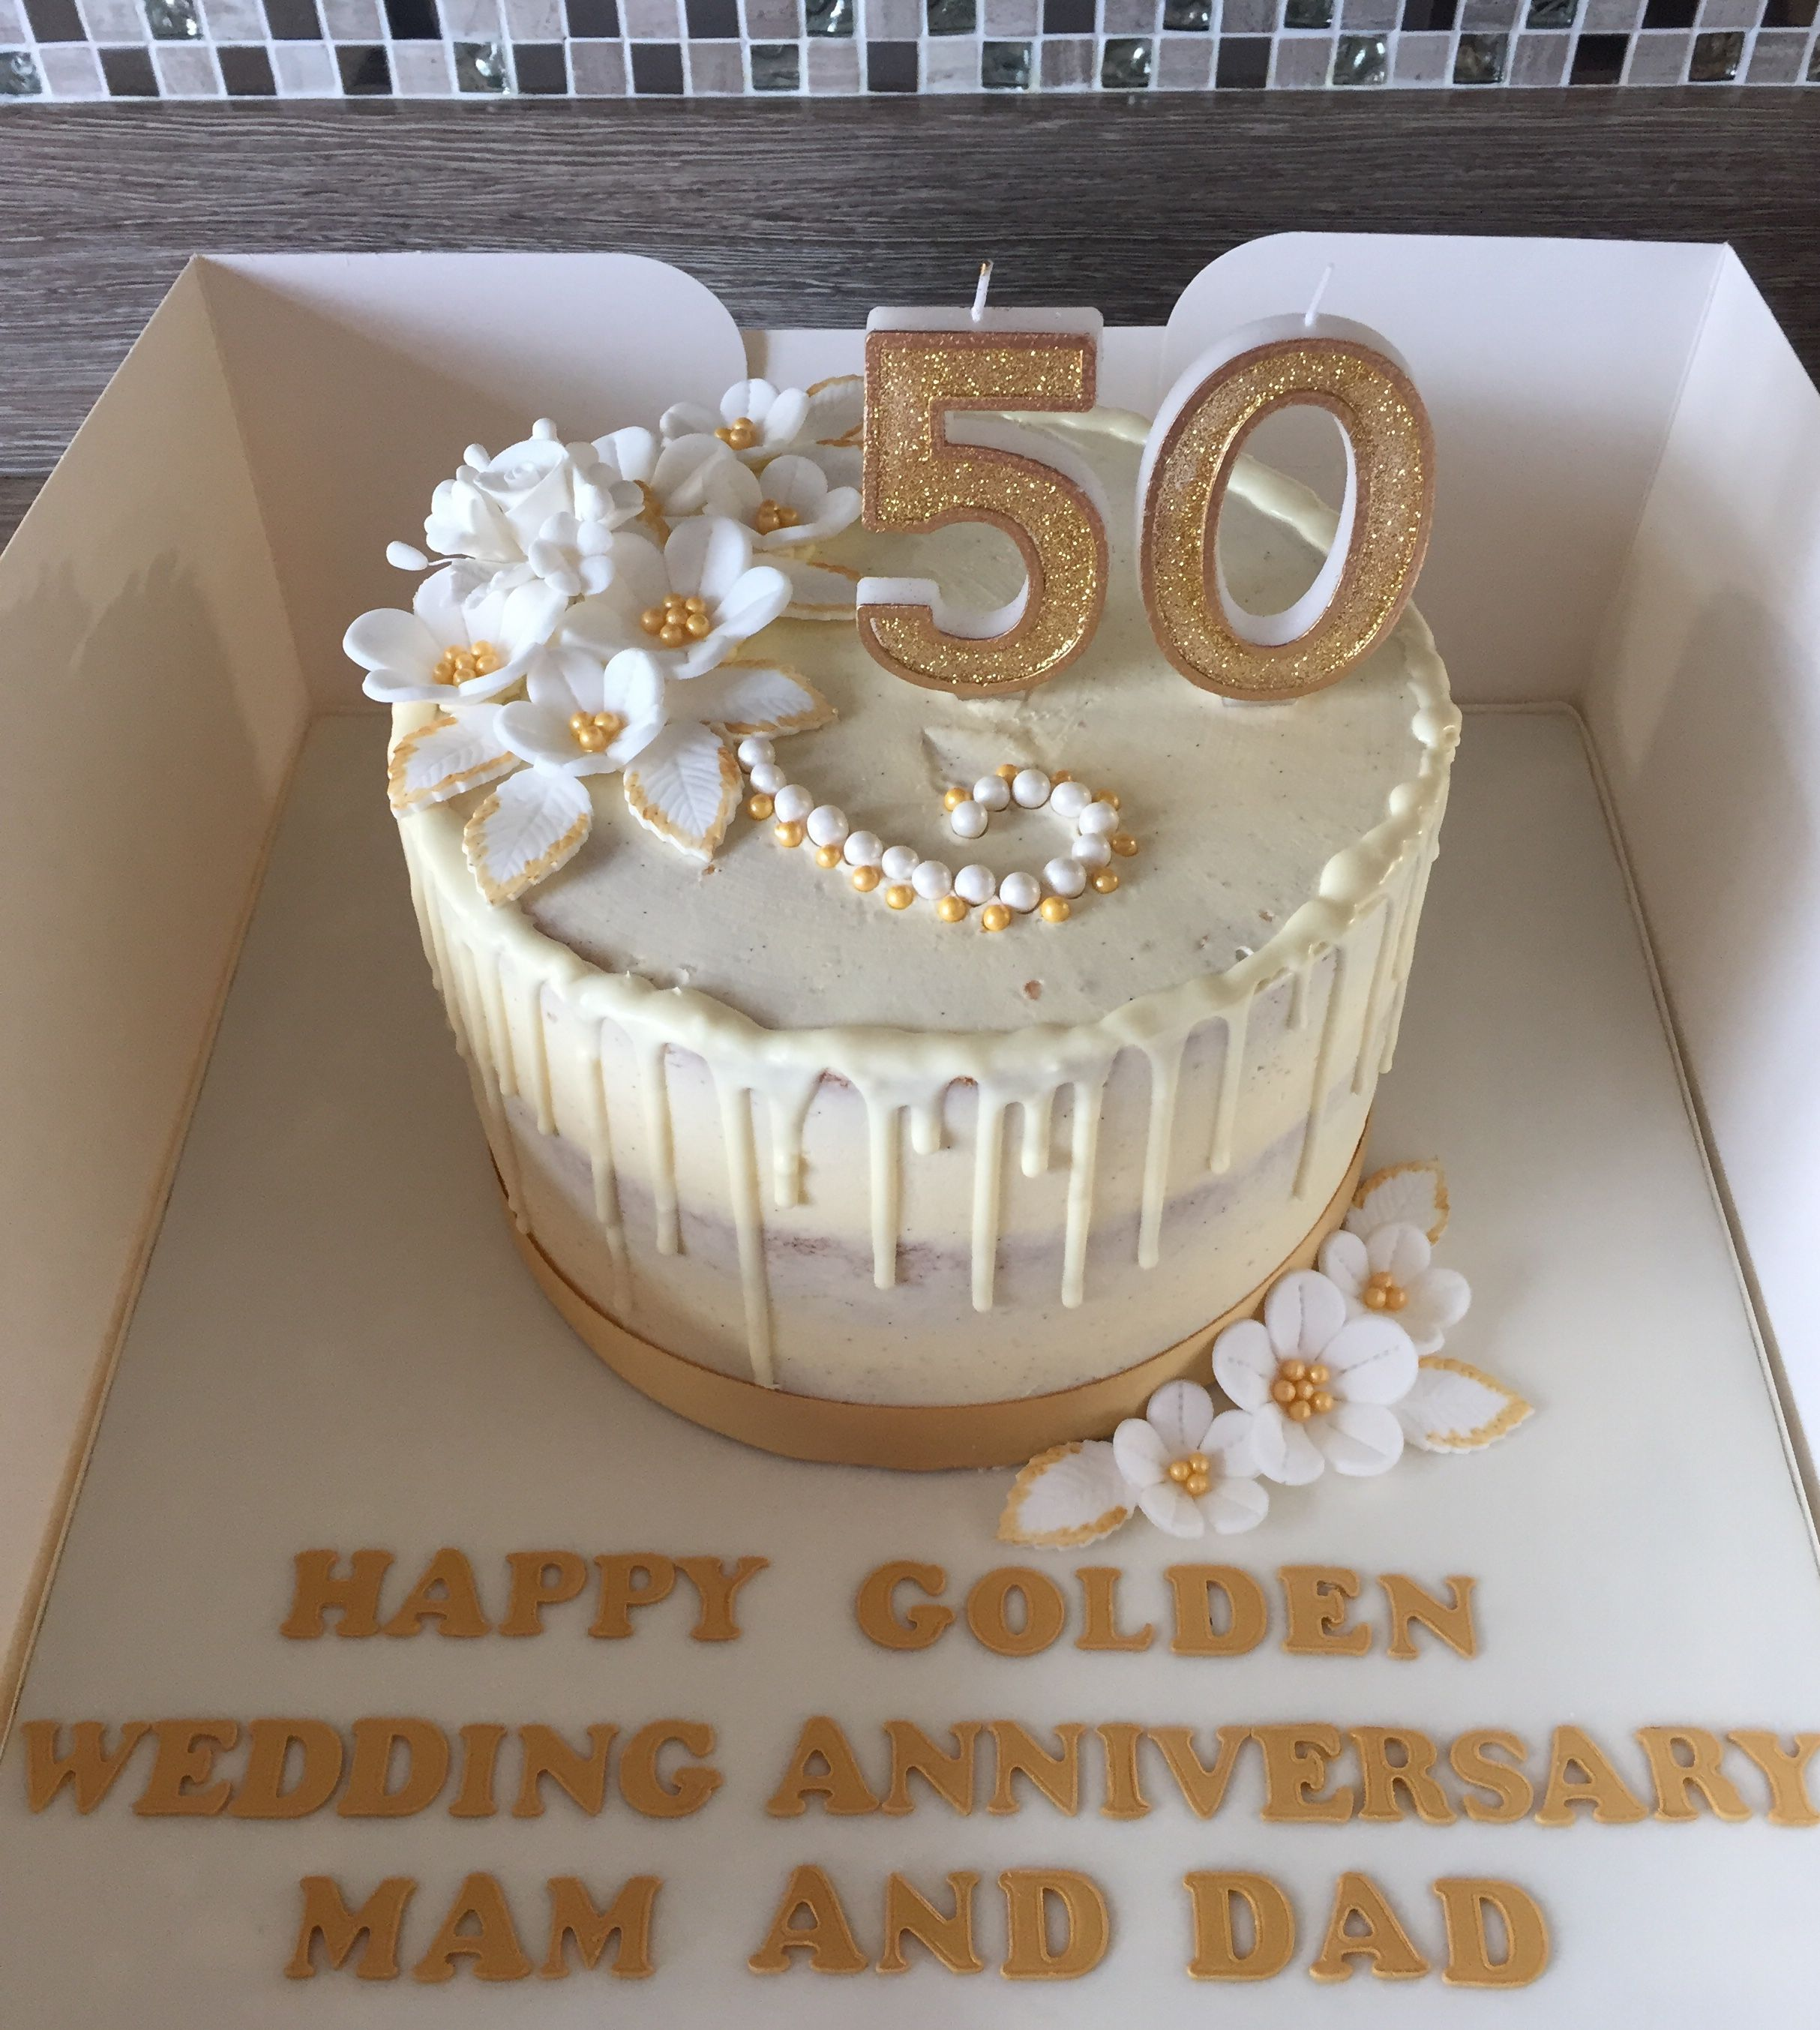 50th Wedding Anniversary Cake By Dawn 50th Anniversary Cakes 50th Wedding Anniversary Cakes Golden Anniversary Cake